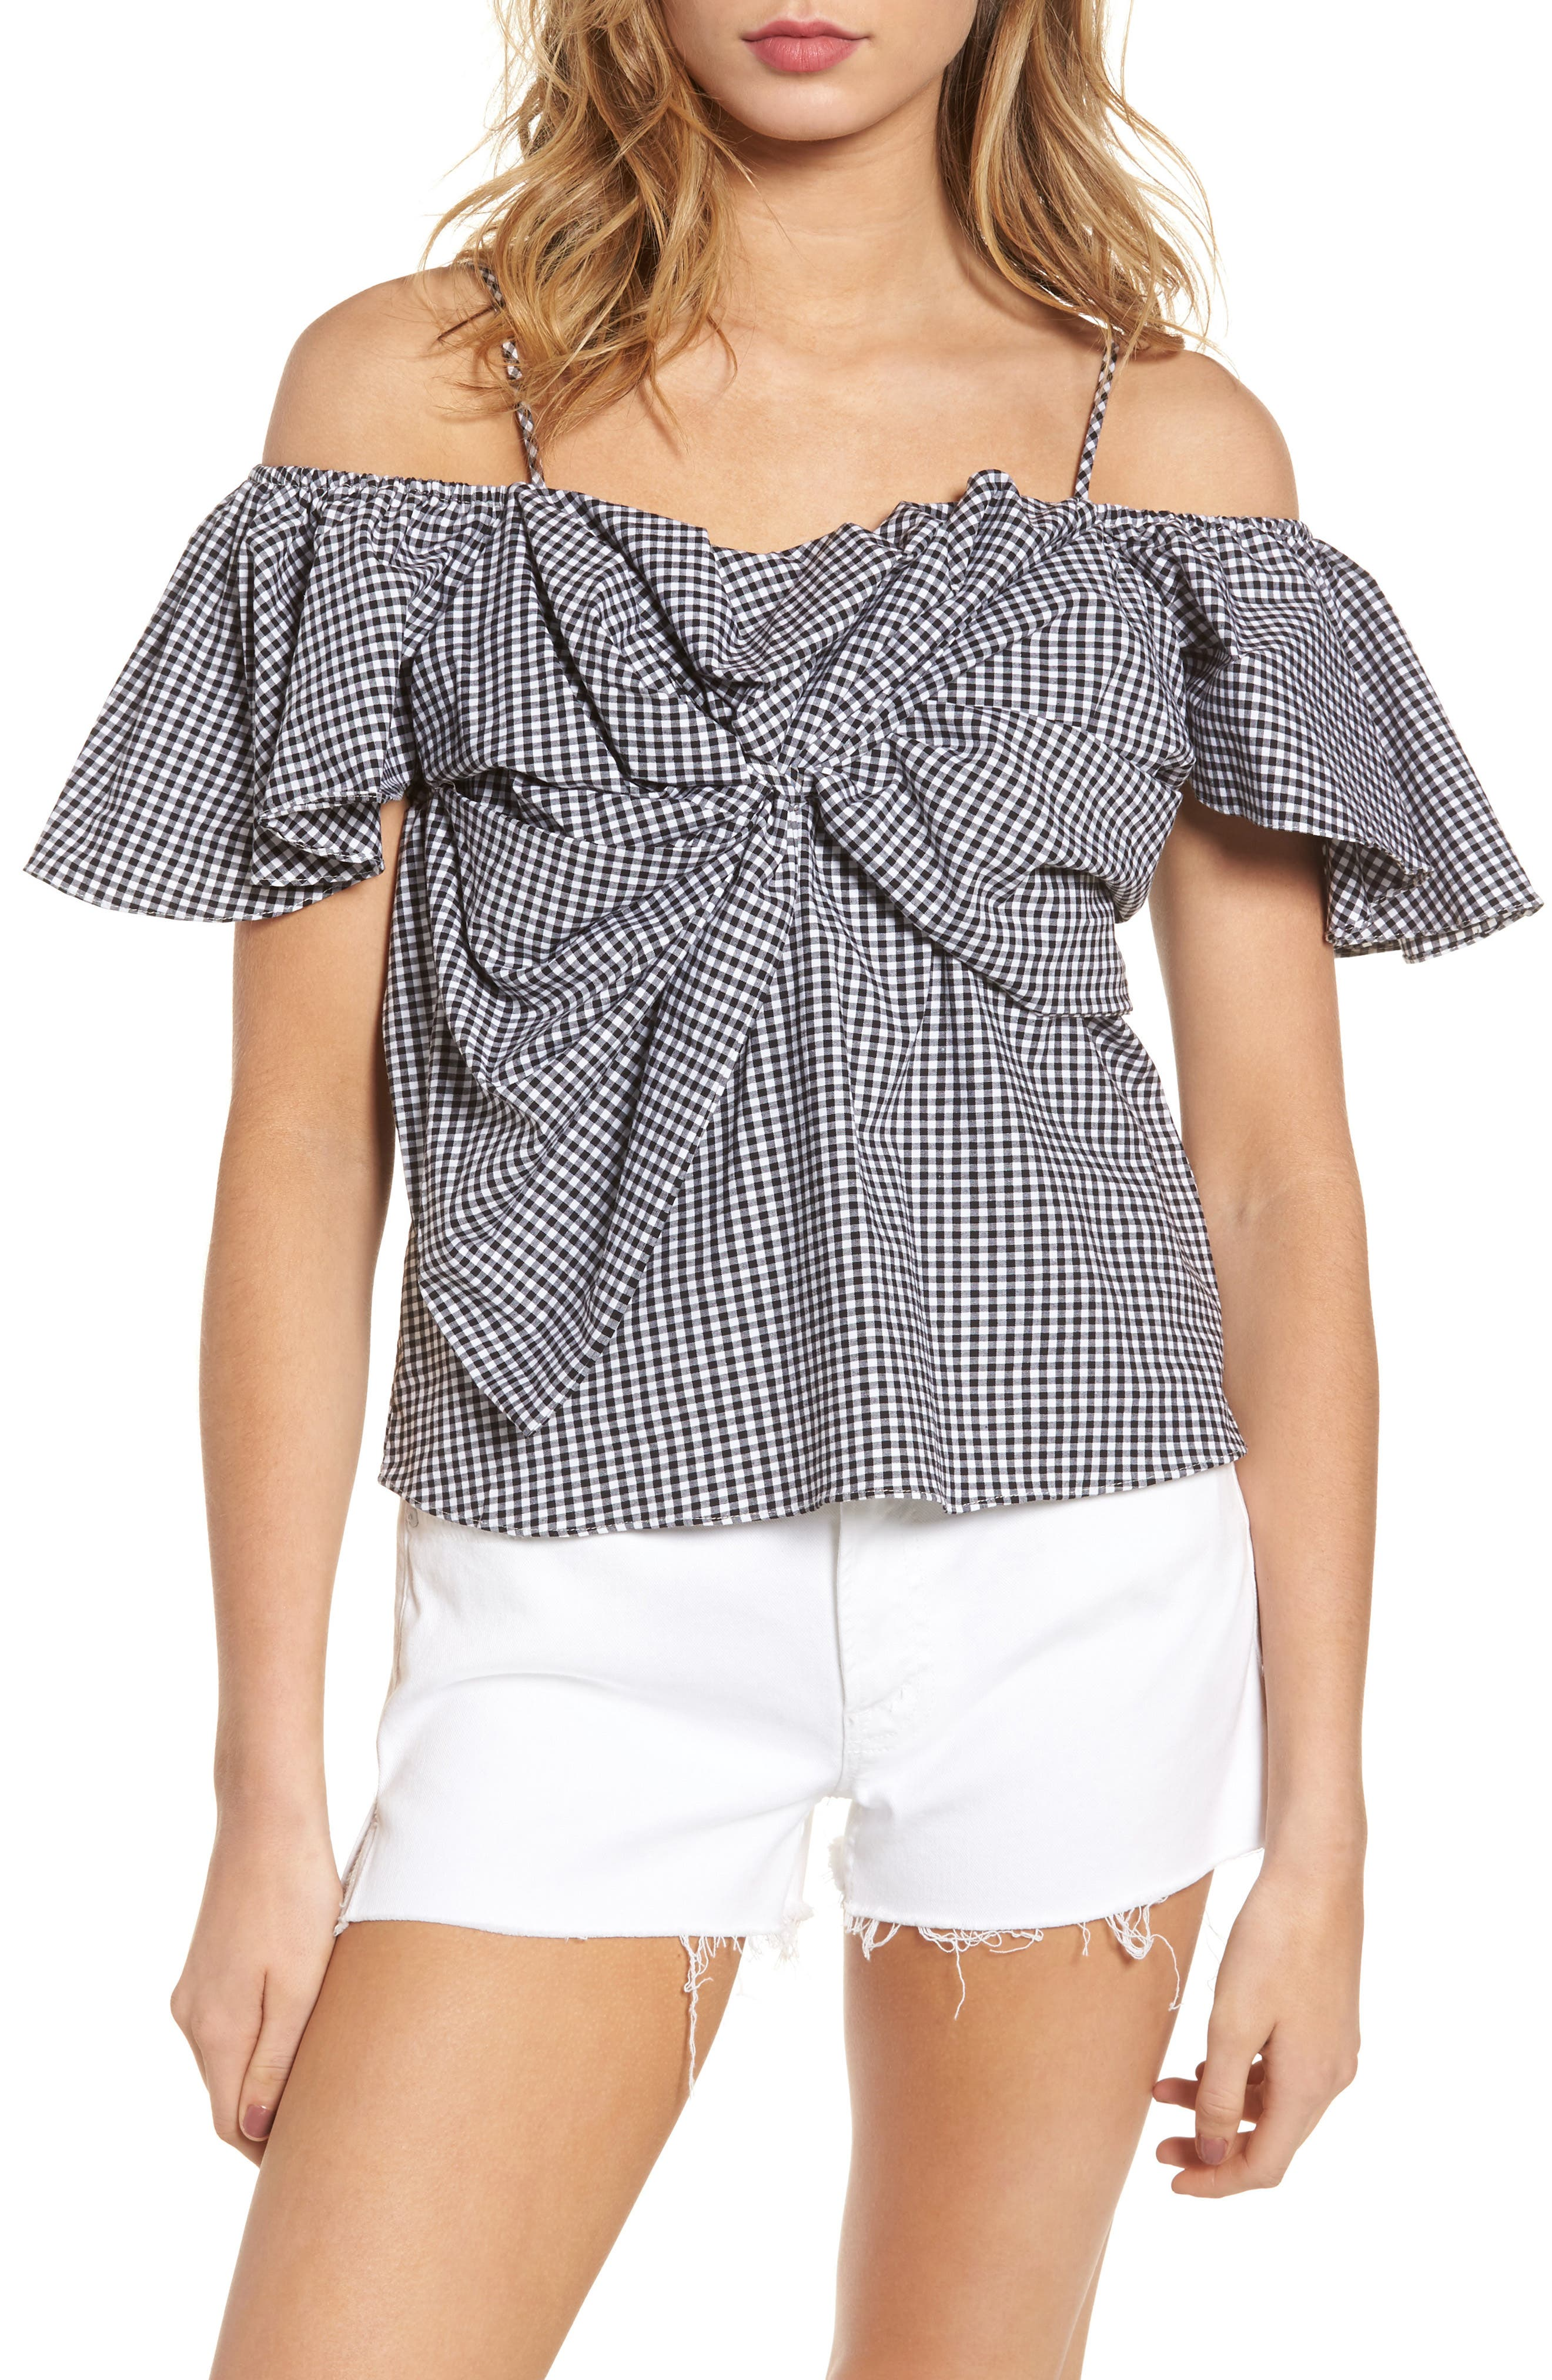 Gaelle Off the Shoulder Top,                         Main,                         color,